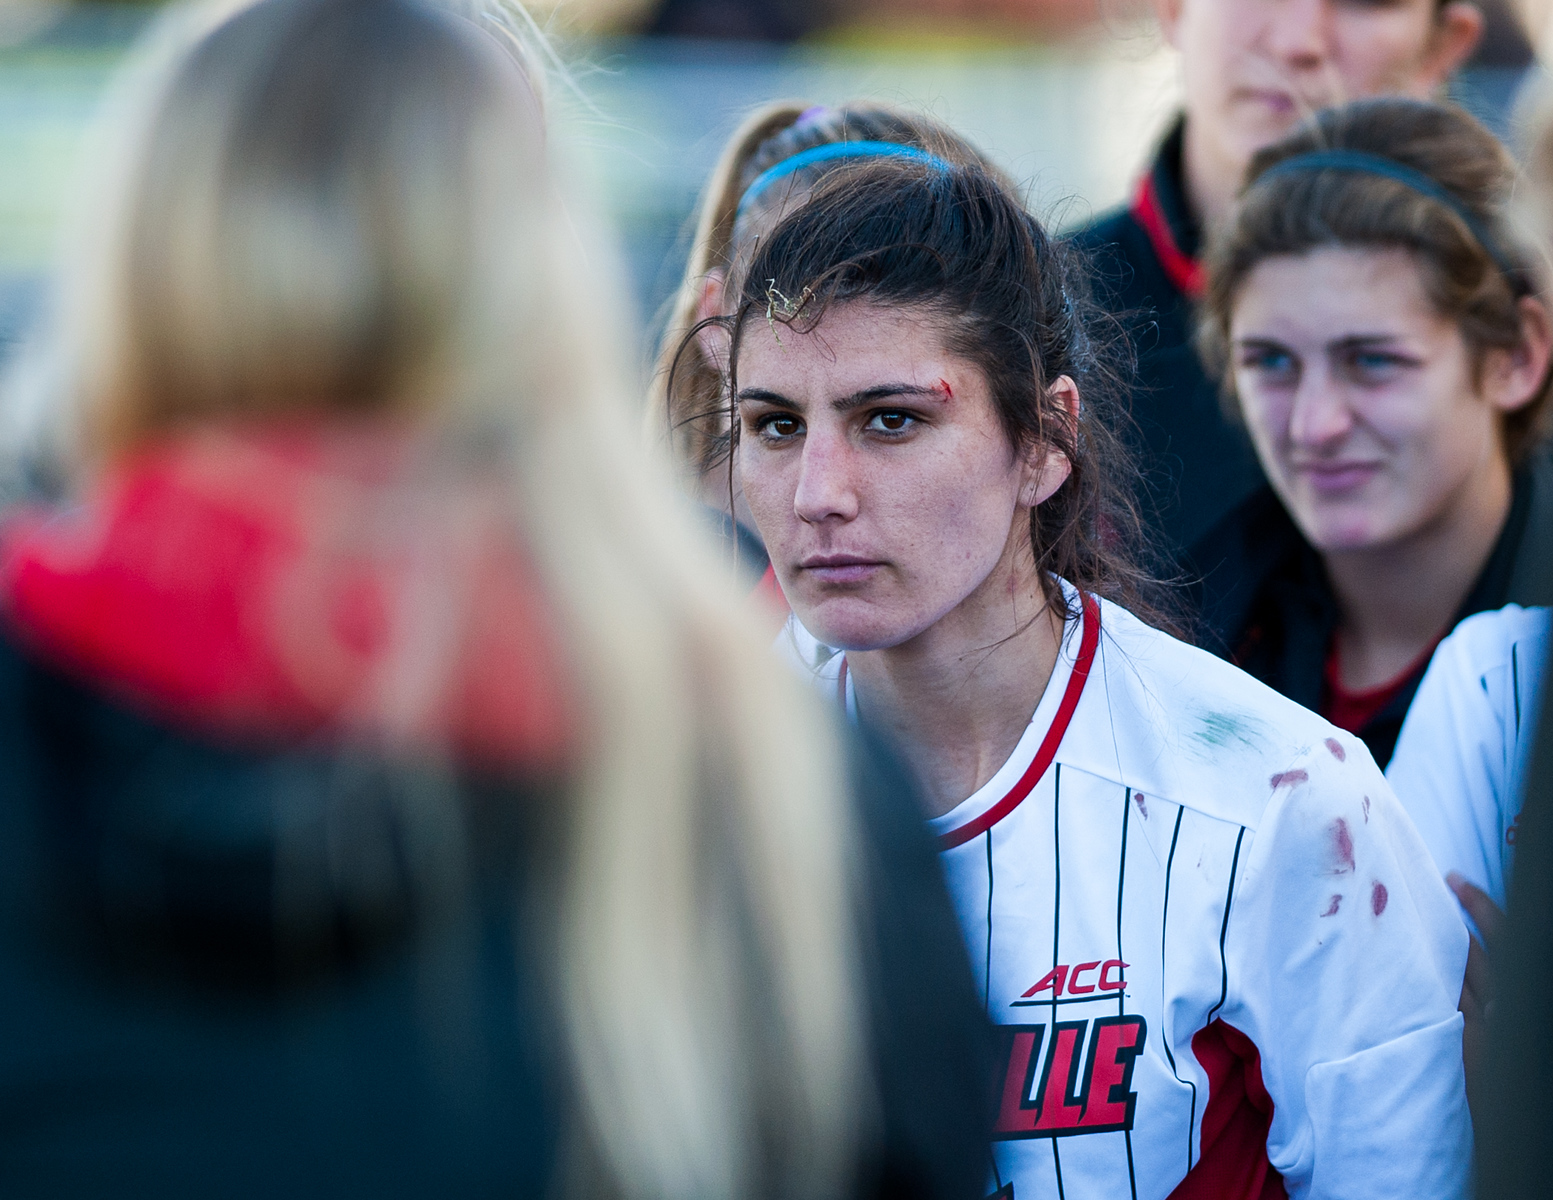 Chatham DeProspo (no. 11) of the women's soccer team listens to head coach Karen Ferguson-Dayes follwing a loss in a regular season game for the University of Louisville VS Virginia on 10-19-14 in Louisville, Kentucky at Lynn Stadium.